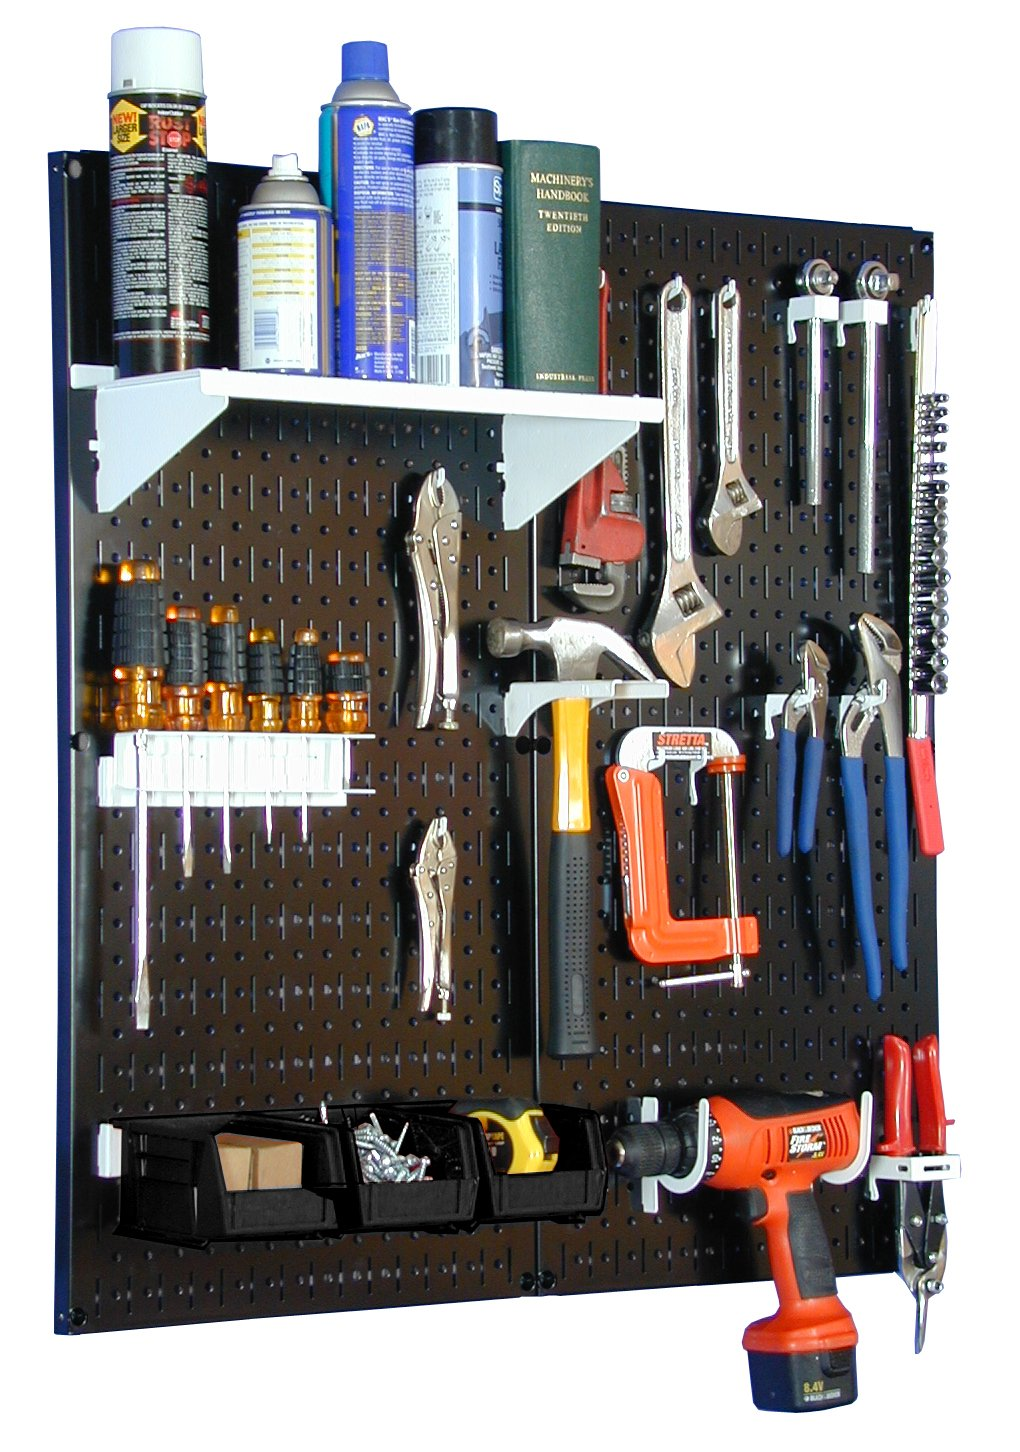 Wall Control 30-WGL-200 BW Metal Pegboard Utility Tool Storage Kit with Black Pegboard and White Accessories